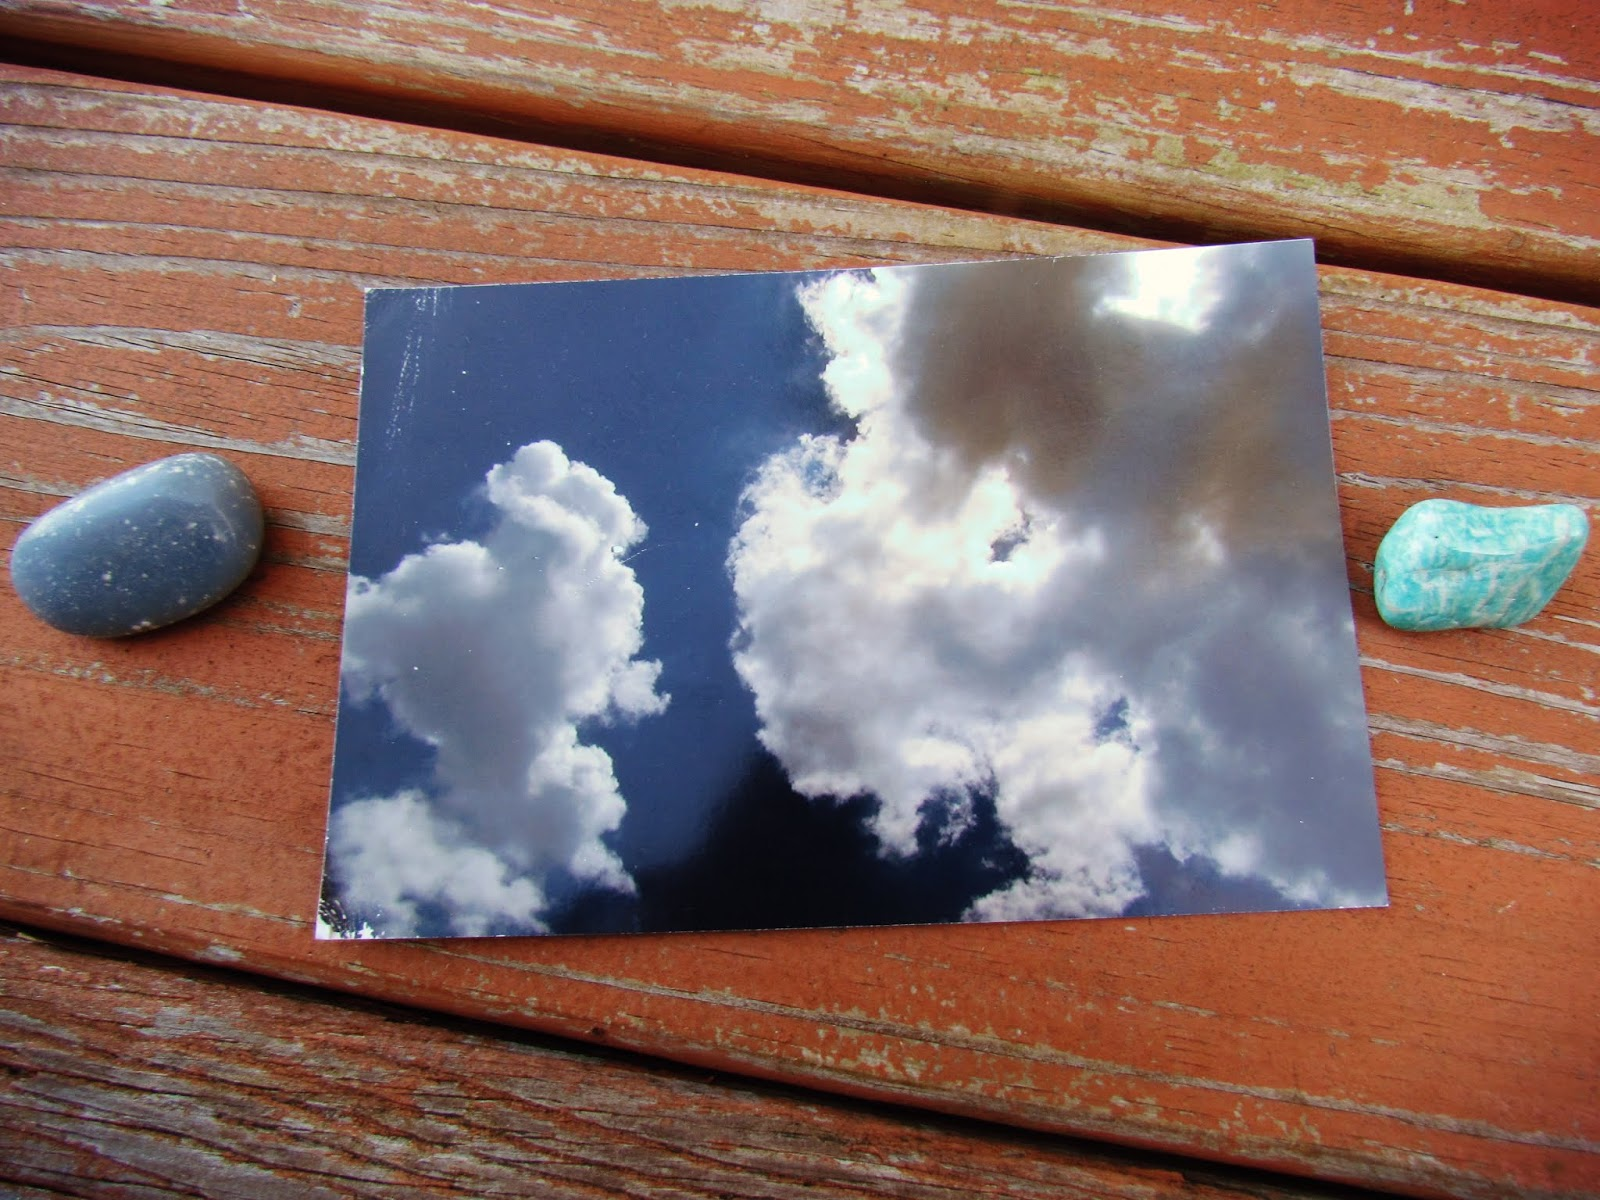 A photograph of clouds floating in the sky, blue skies, postcard flat lay, angelite gemstone, and nature flat lay design